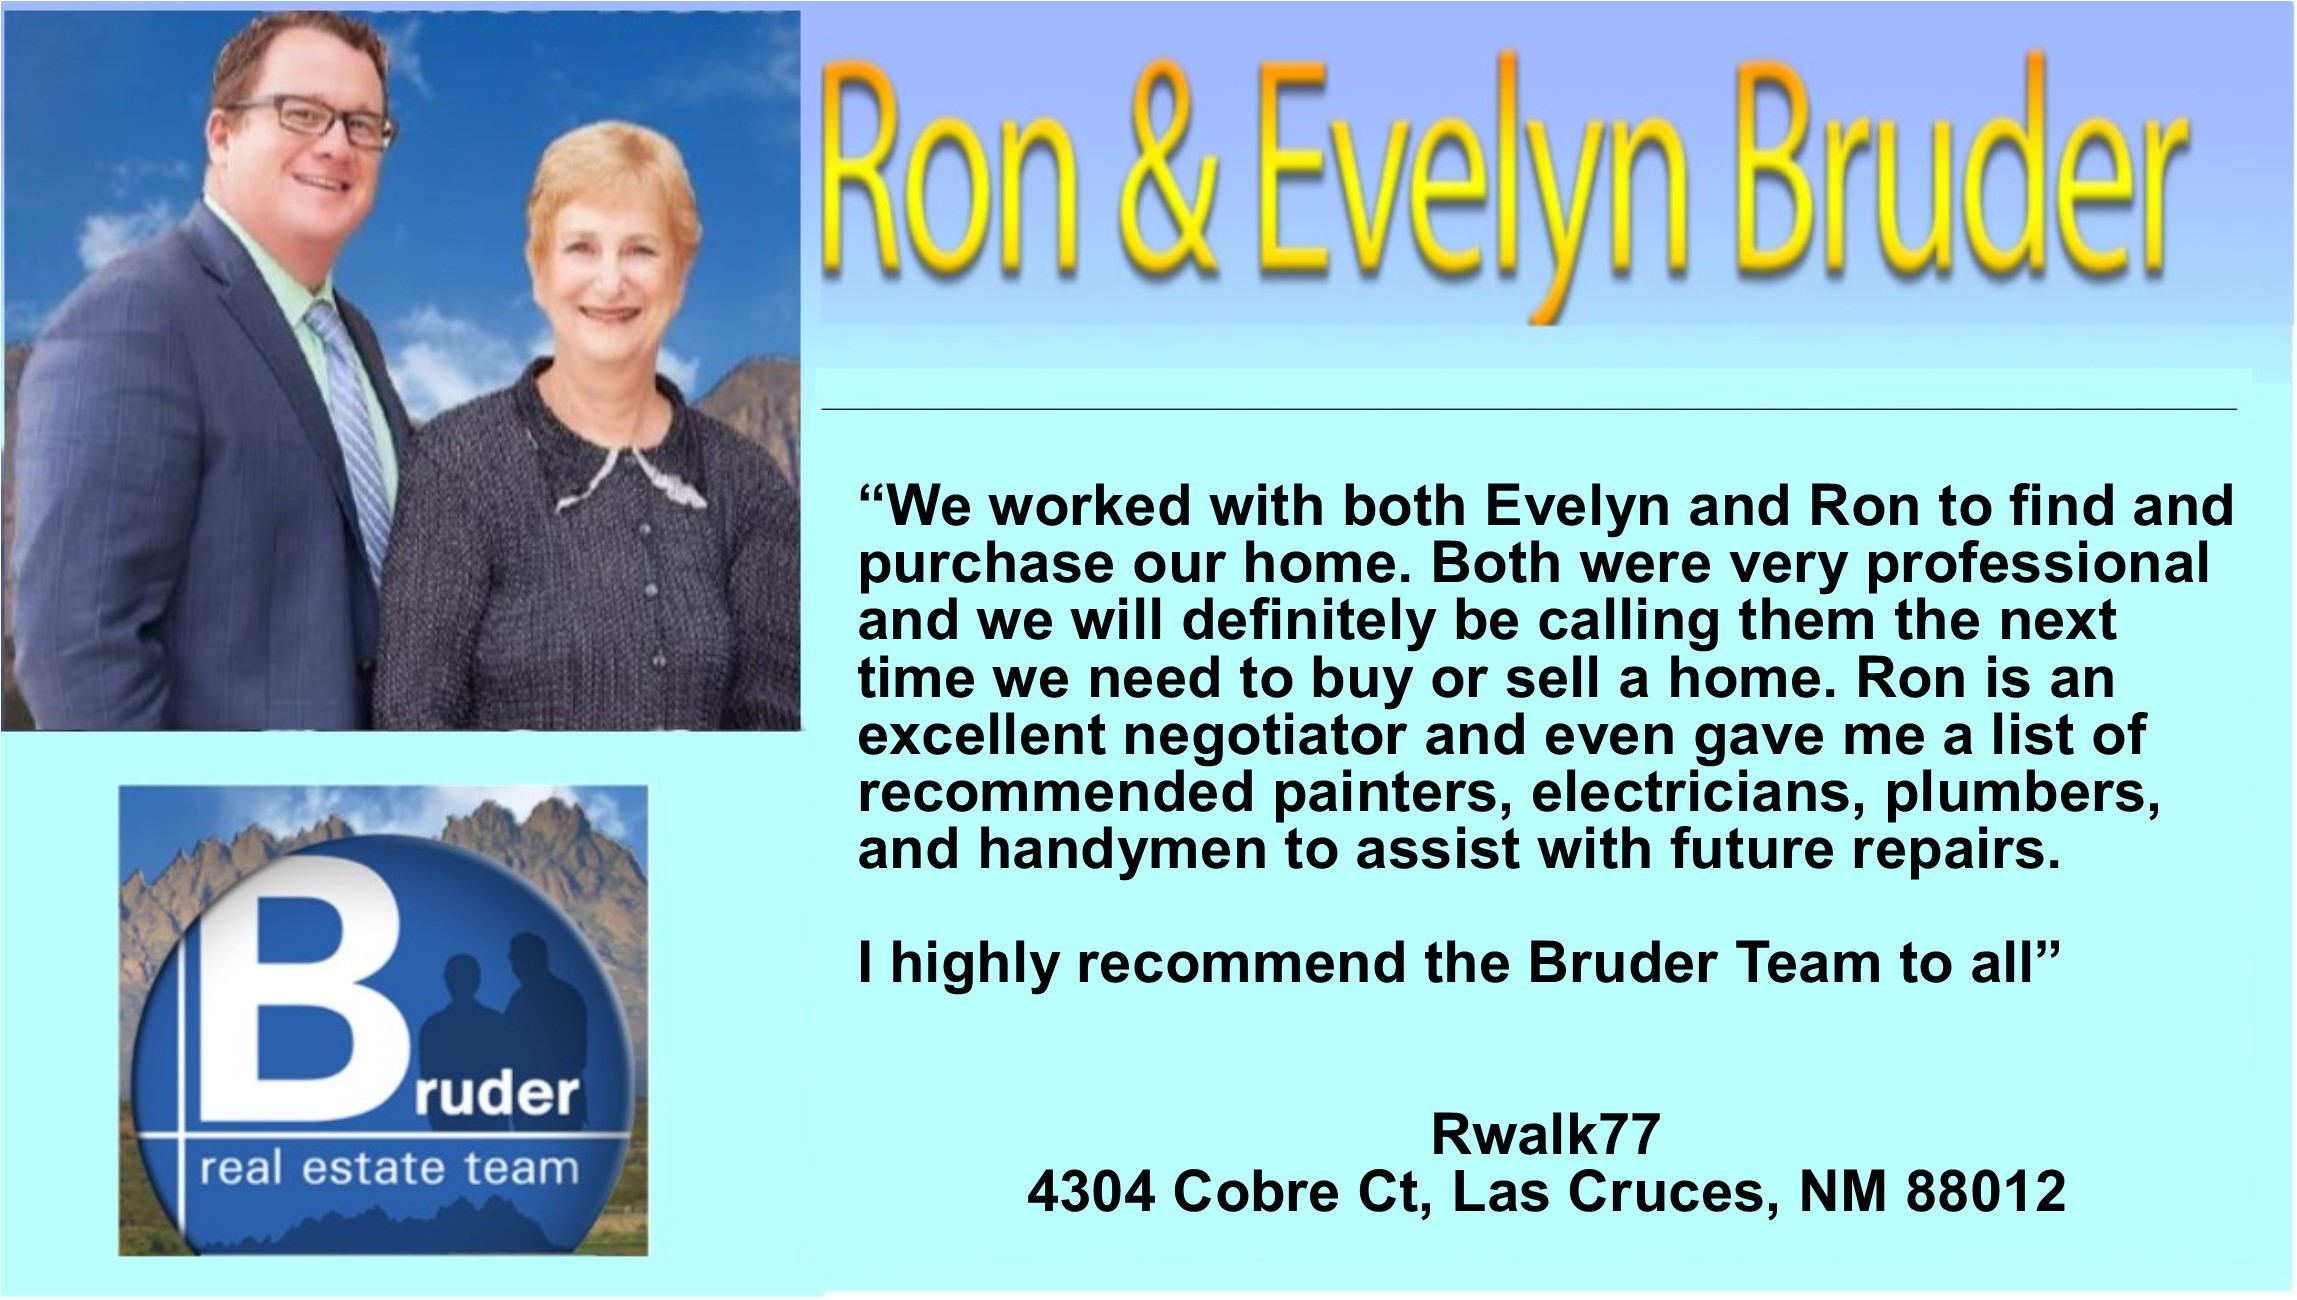 evelyn & Ron were very professional - 5 star testimonial